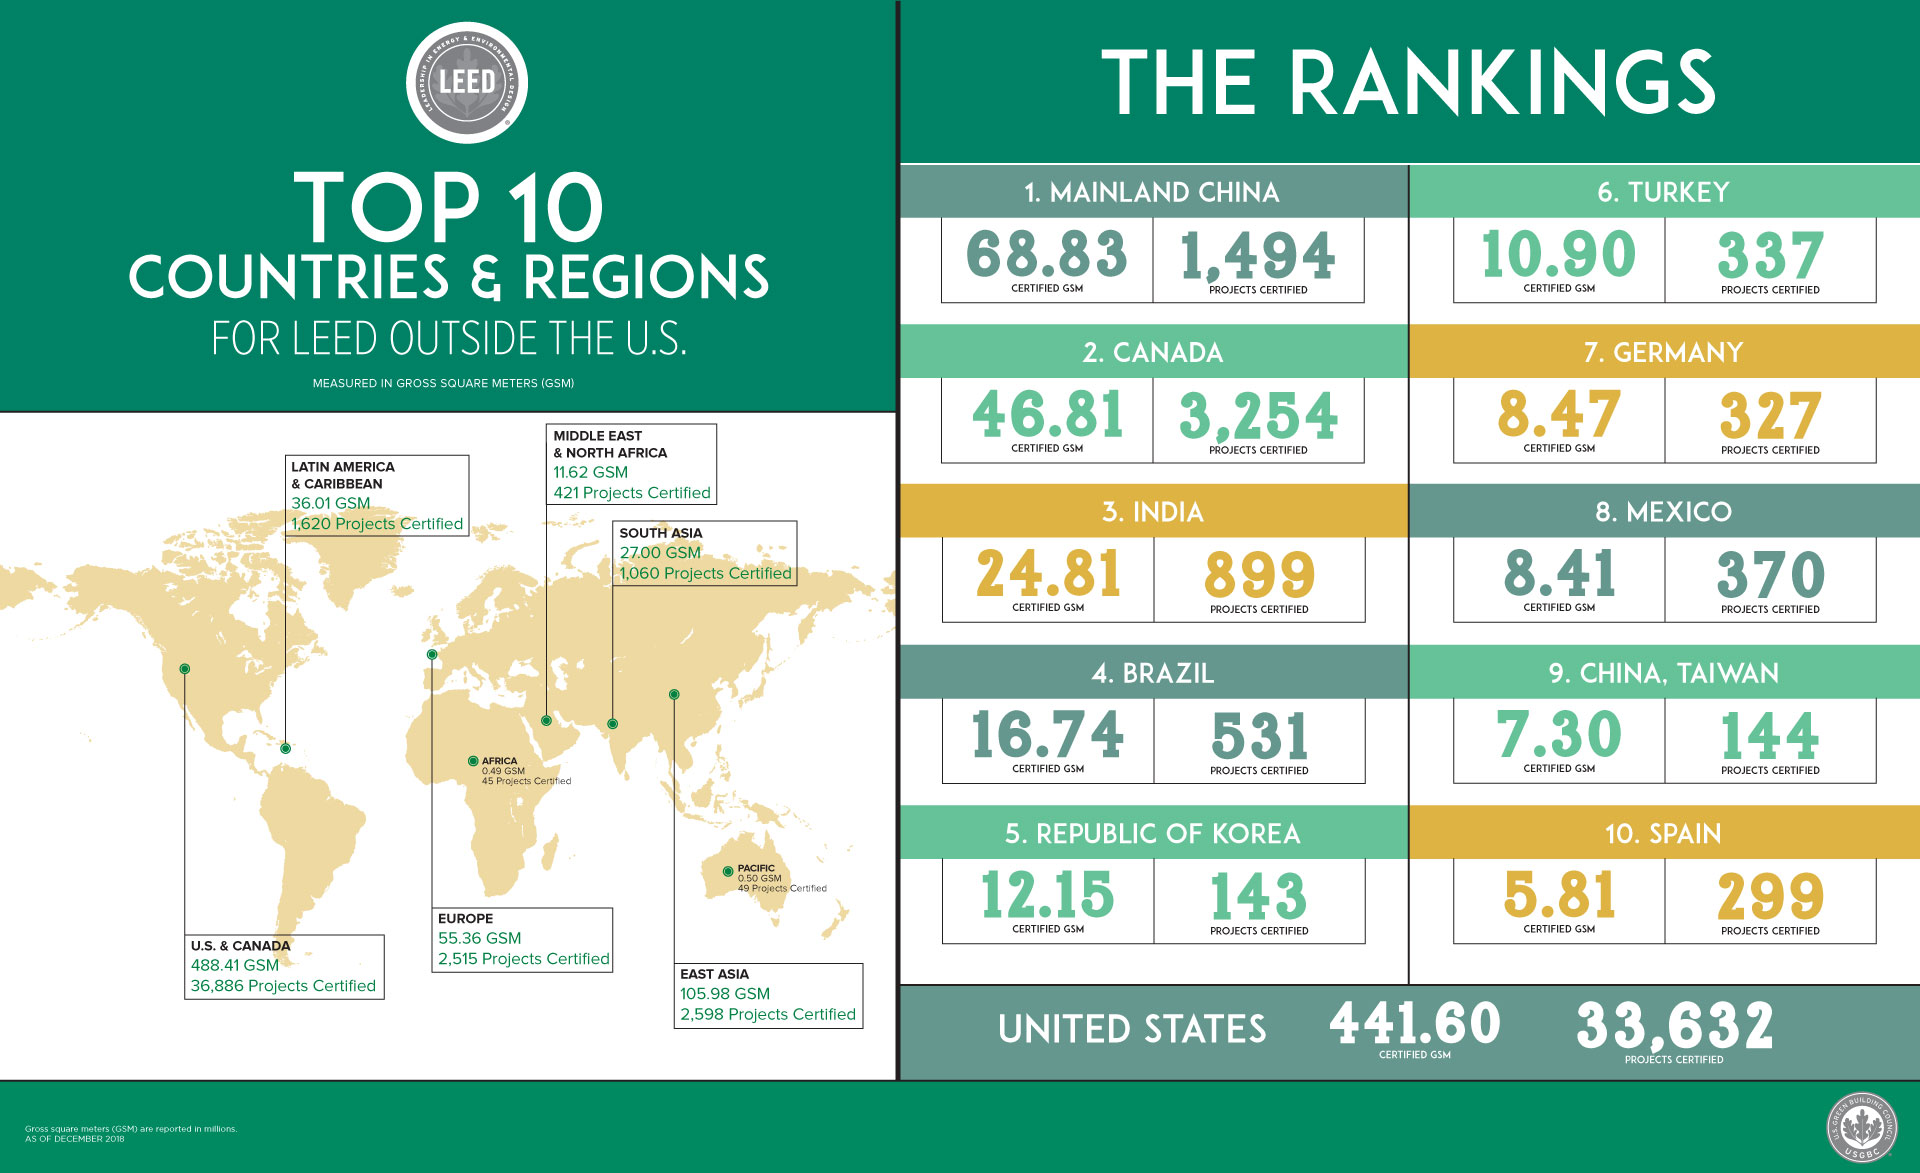 Top 10 countries and regions for LEED in 2018